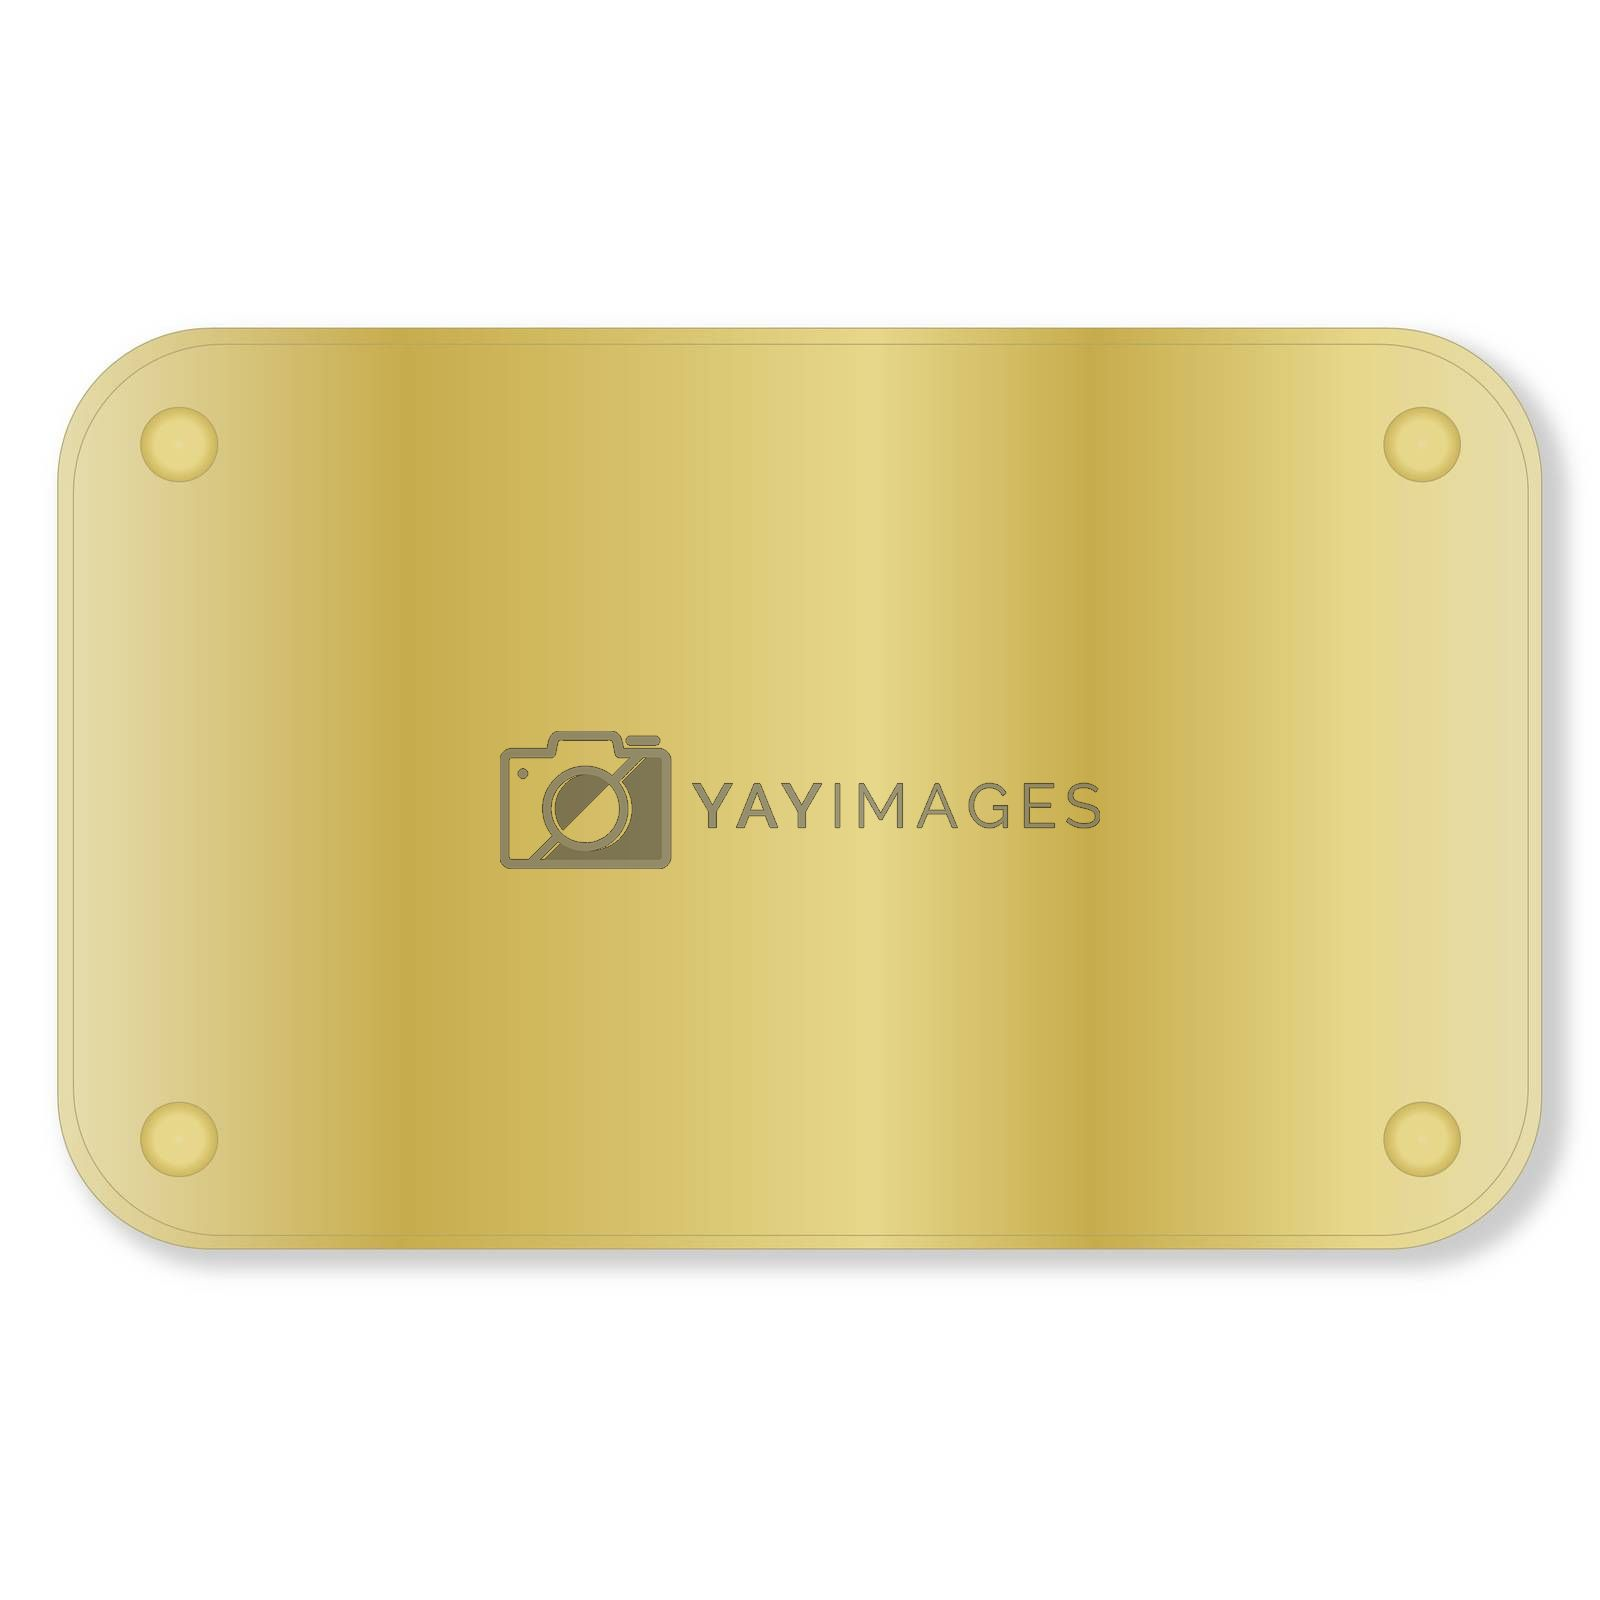 Royalty free image of Golden plate by Elenaphotos21